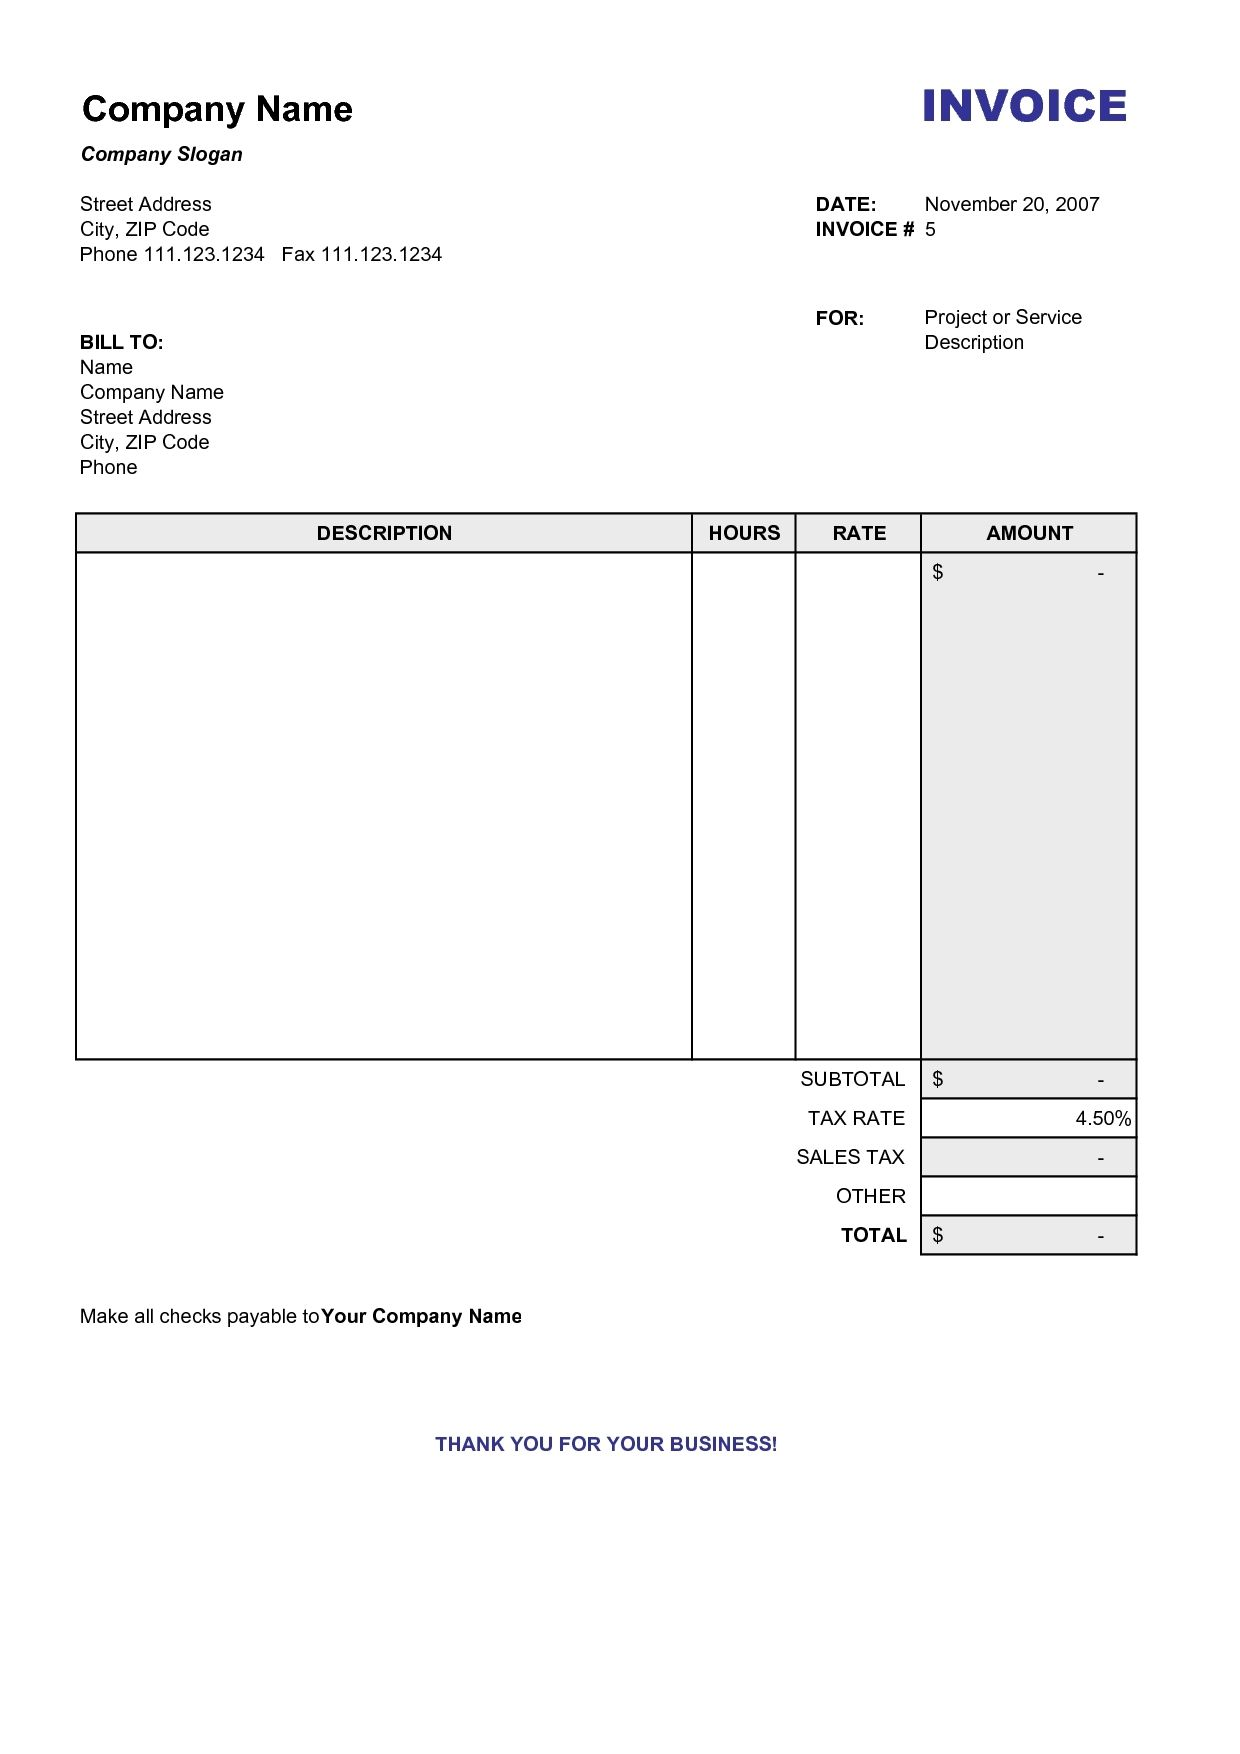 Copy Of A Blank Invoice Invoice Template Free  Copy Of Blank